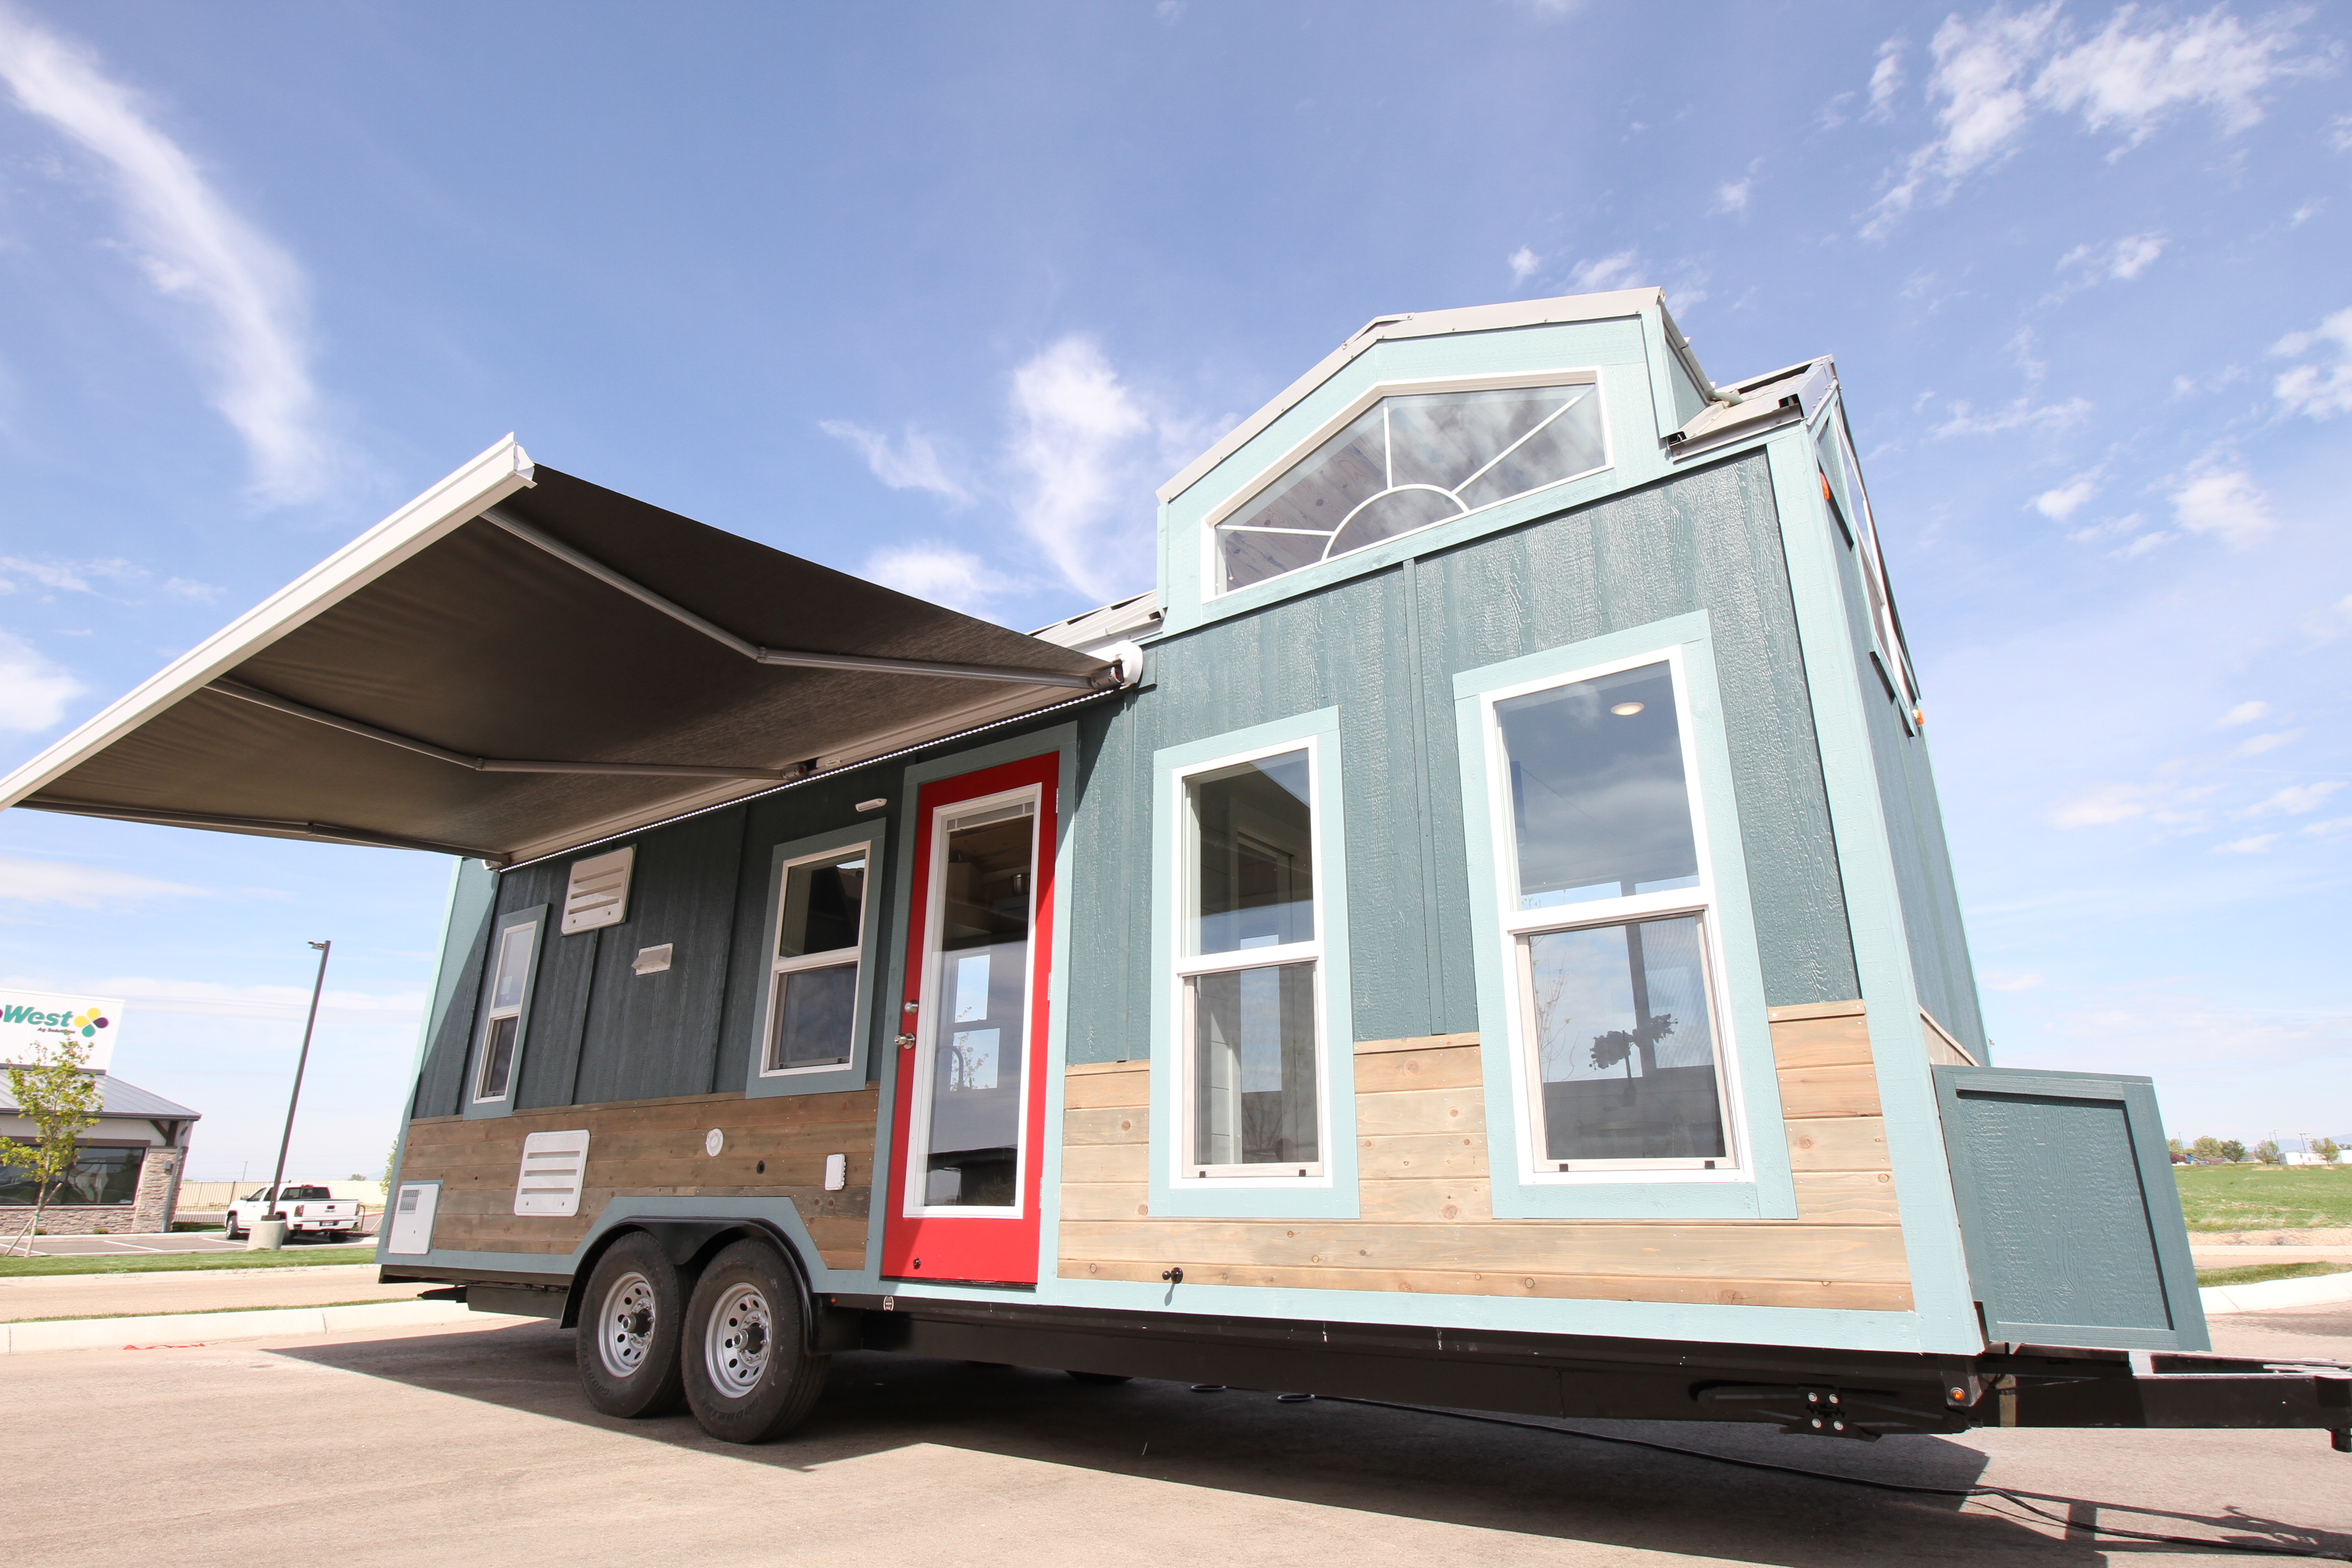 Tiny Home Designs: Tiny House 2 Lofts For Sale Fully Off Grid This House Will Blow Your Mind